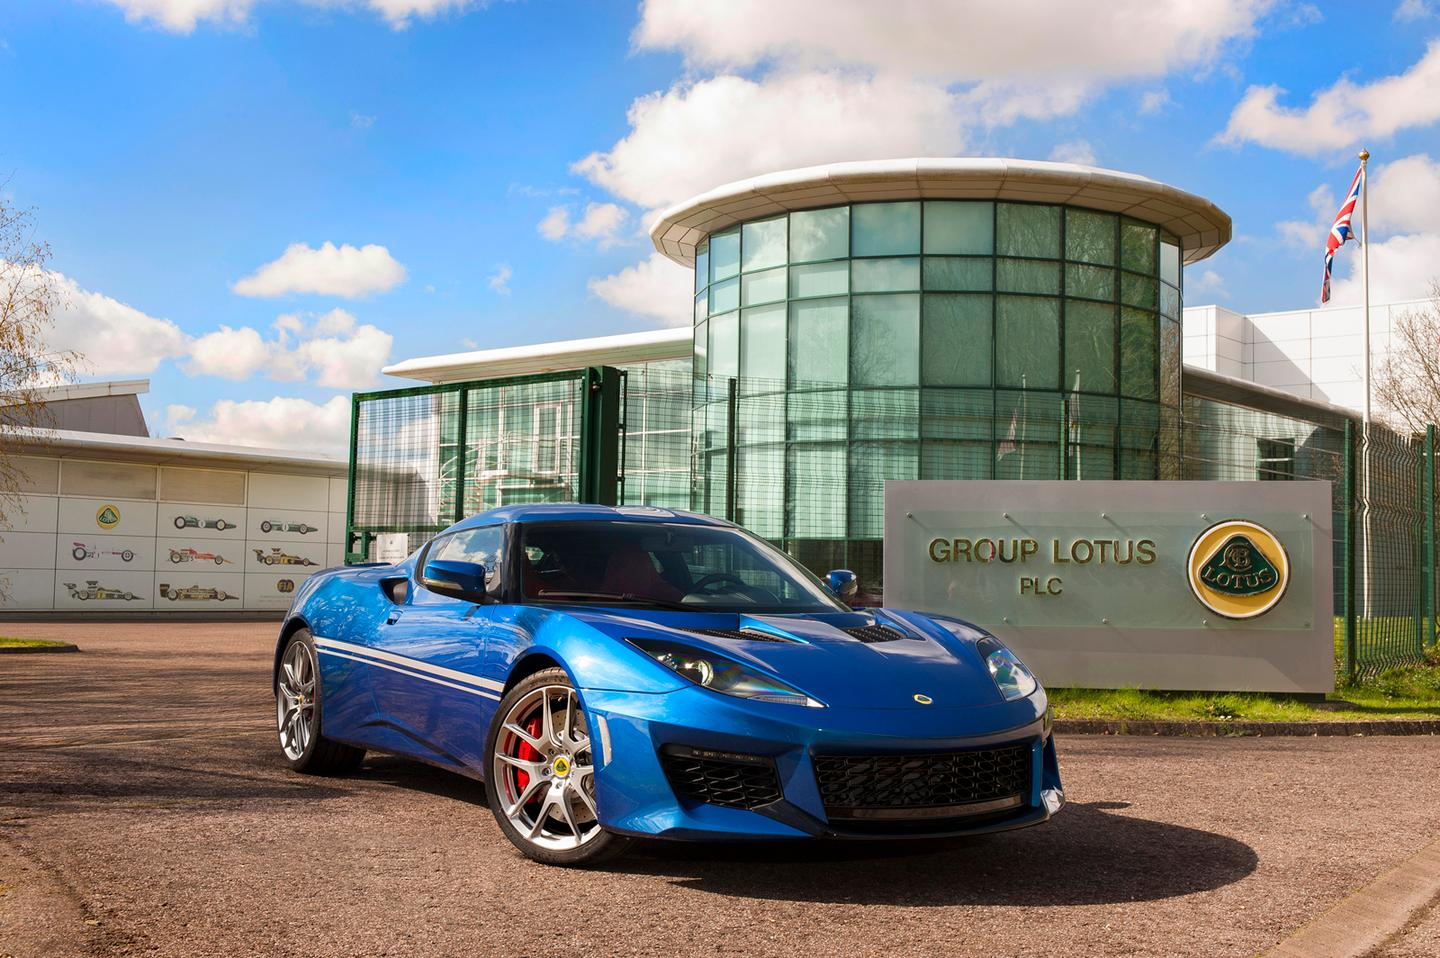 With this special edition celebrating a major milestone in the history of Lotus, the Evora itself also marked a turning point for Lotus